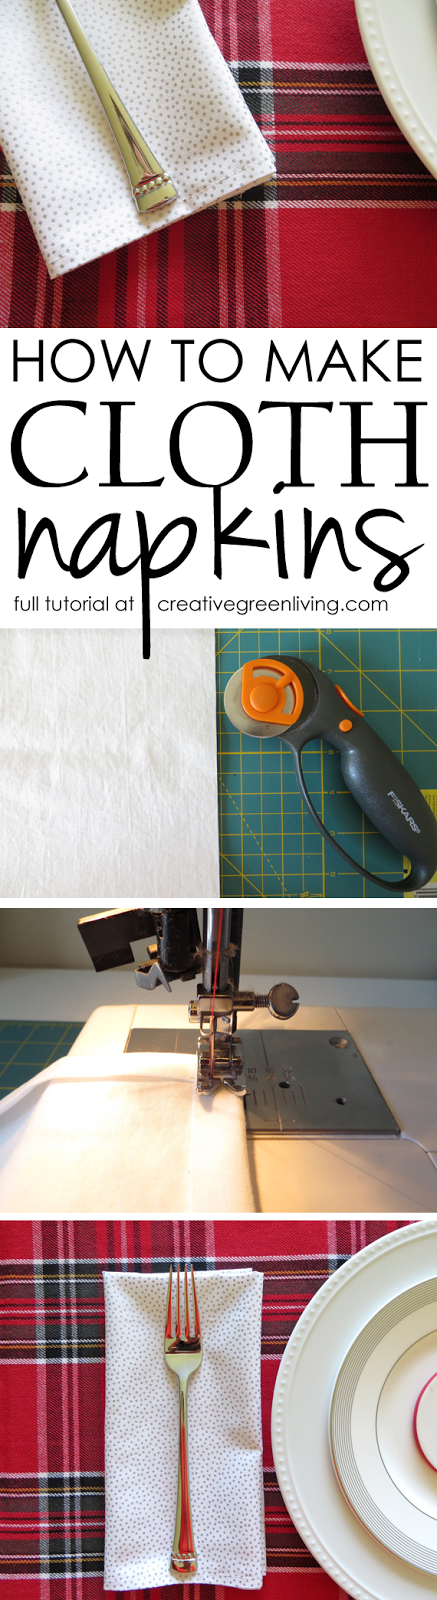 How to make cloth napkins - an easy sewing tutorial from Creative Green Living